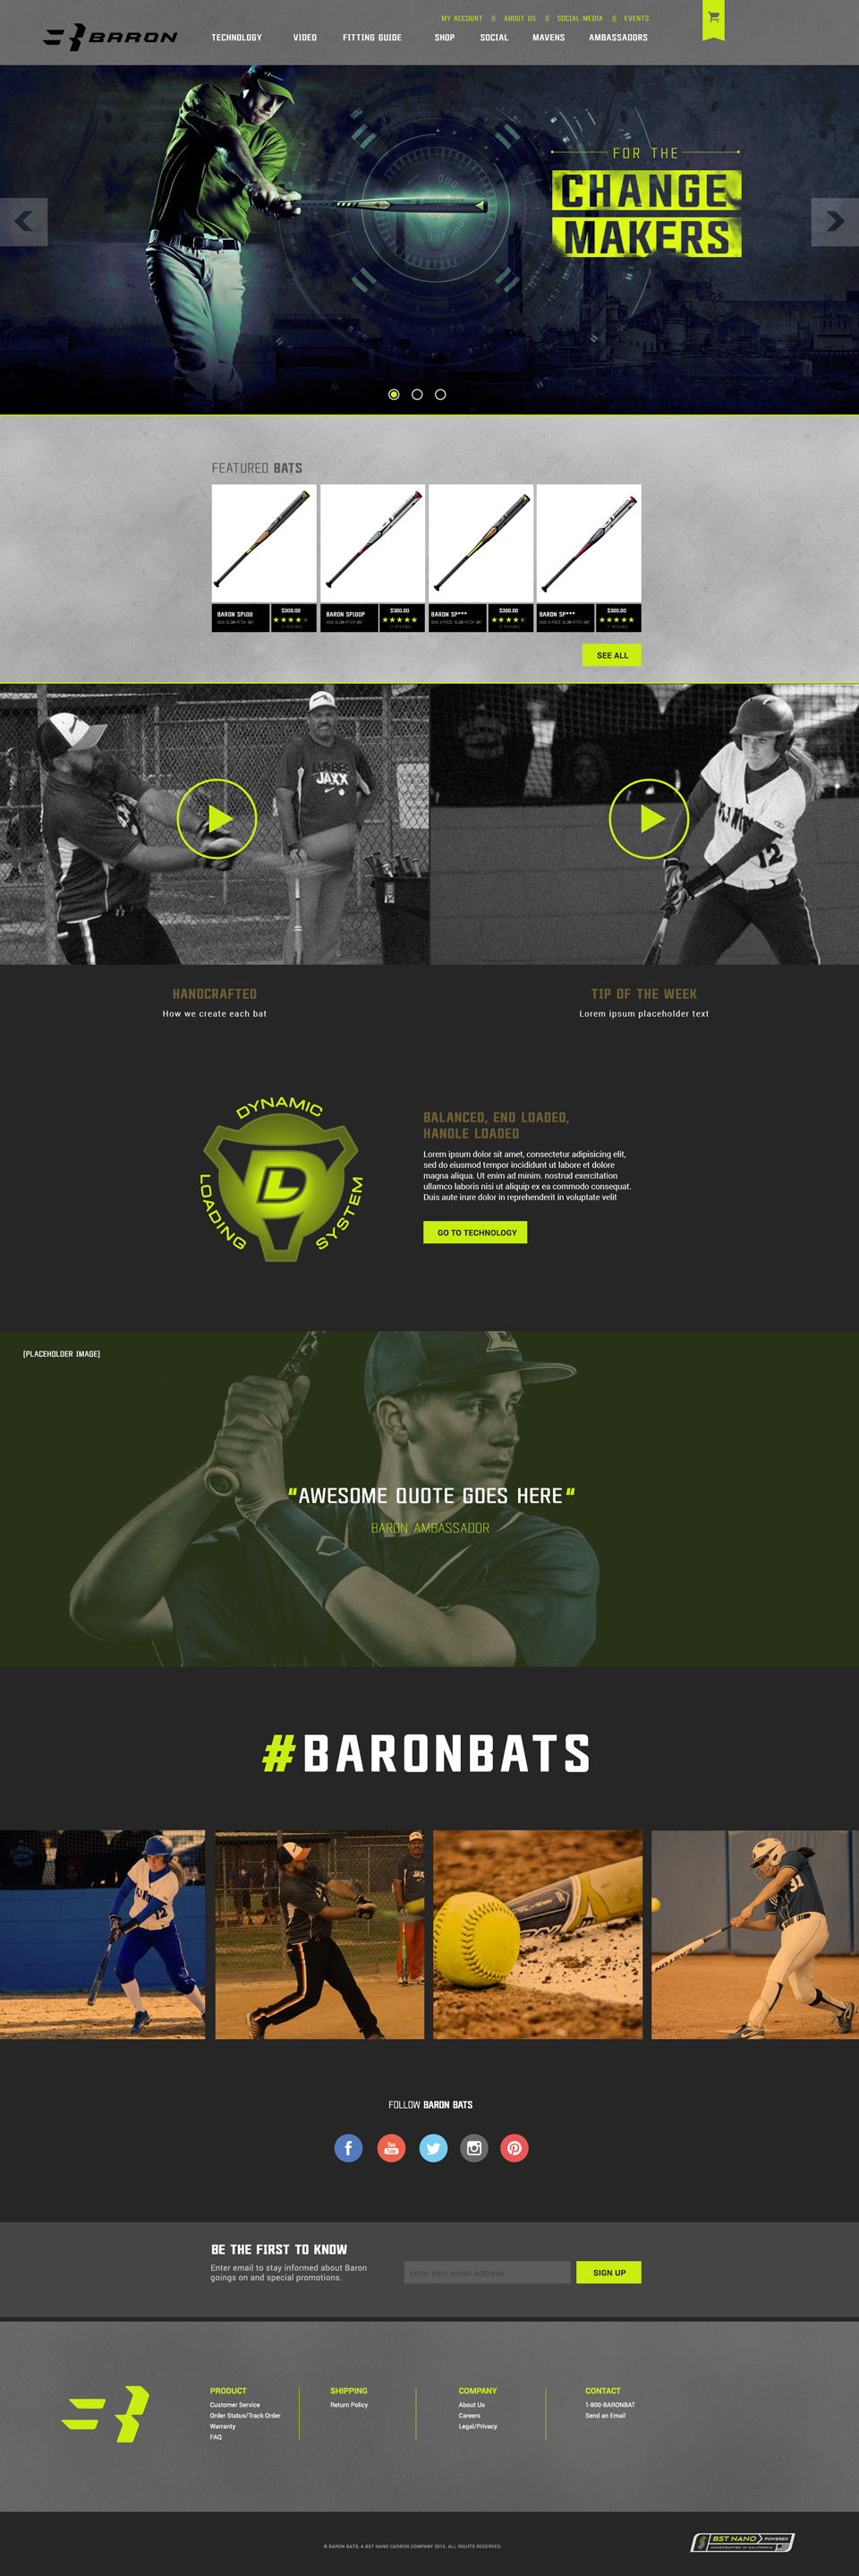 Baron Softball Website Design